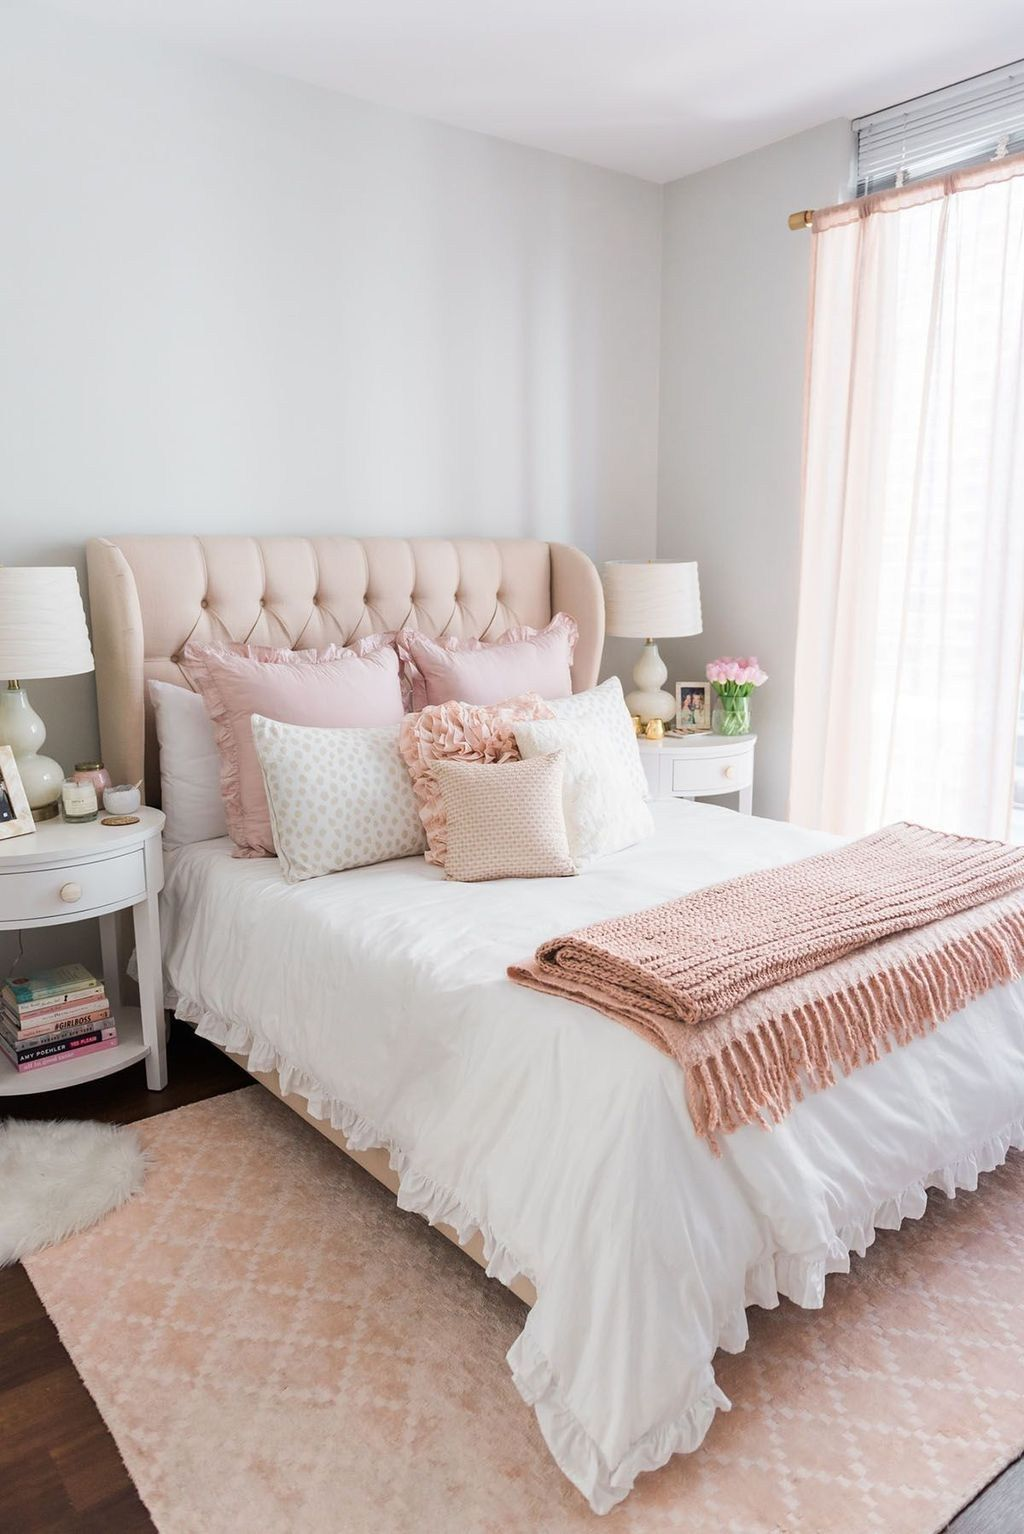 Best Girly But Unique Girl Bedroom Designs Ideas 38 Pink 400 x 300